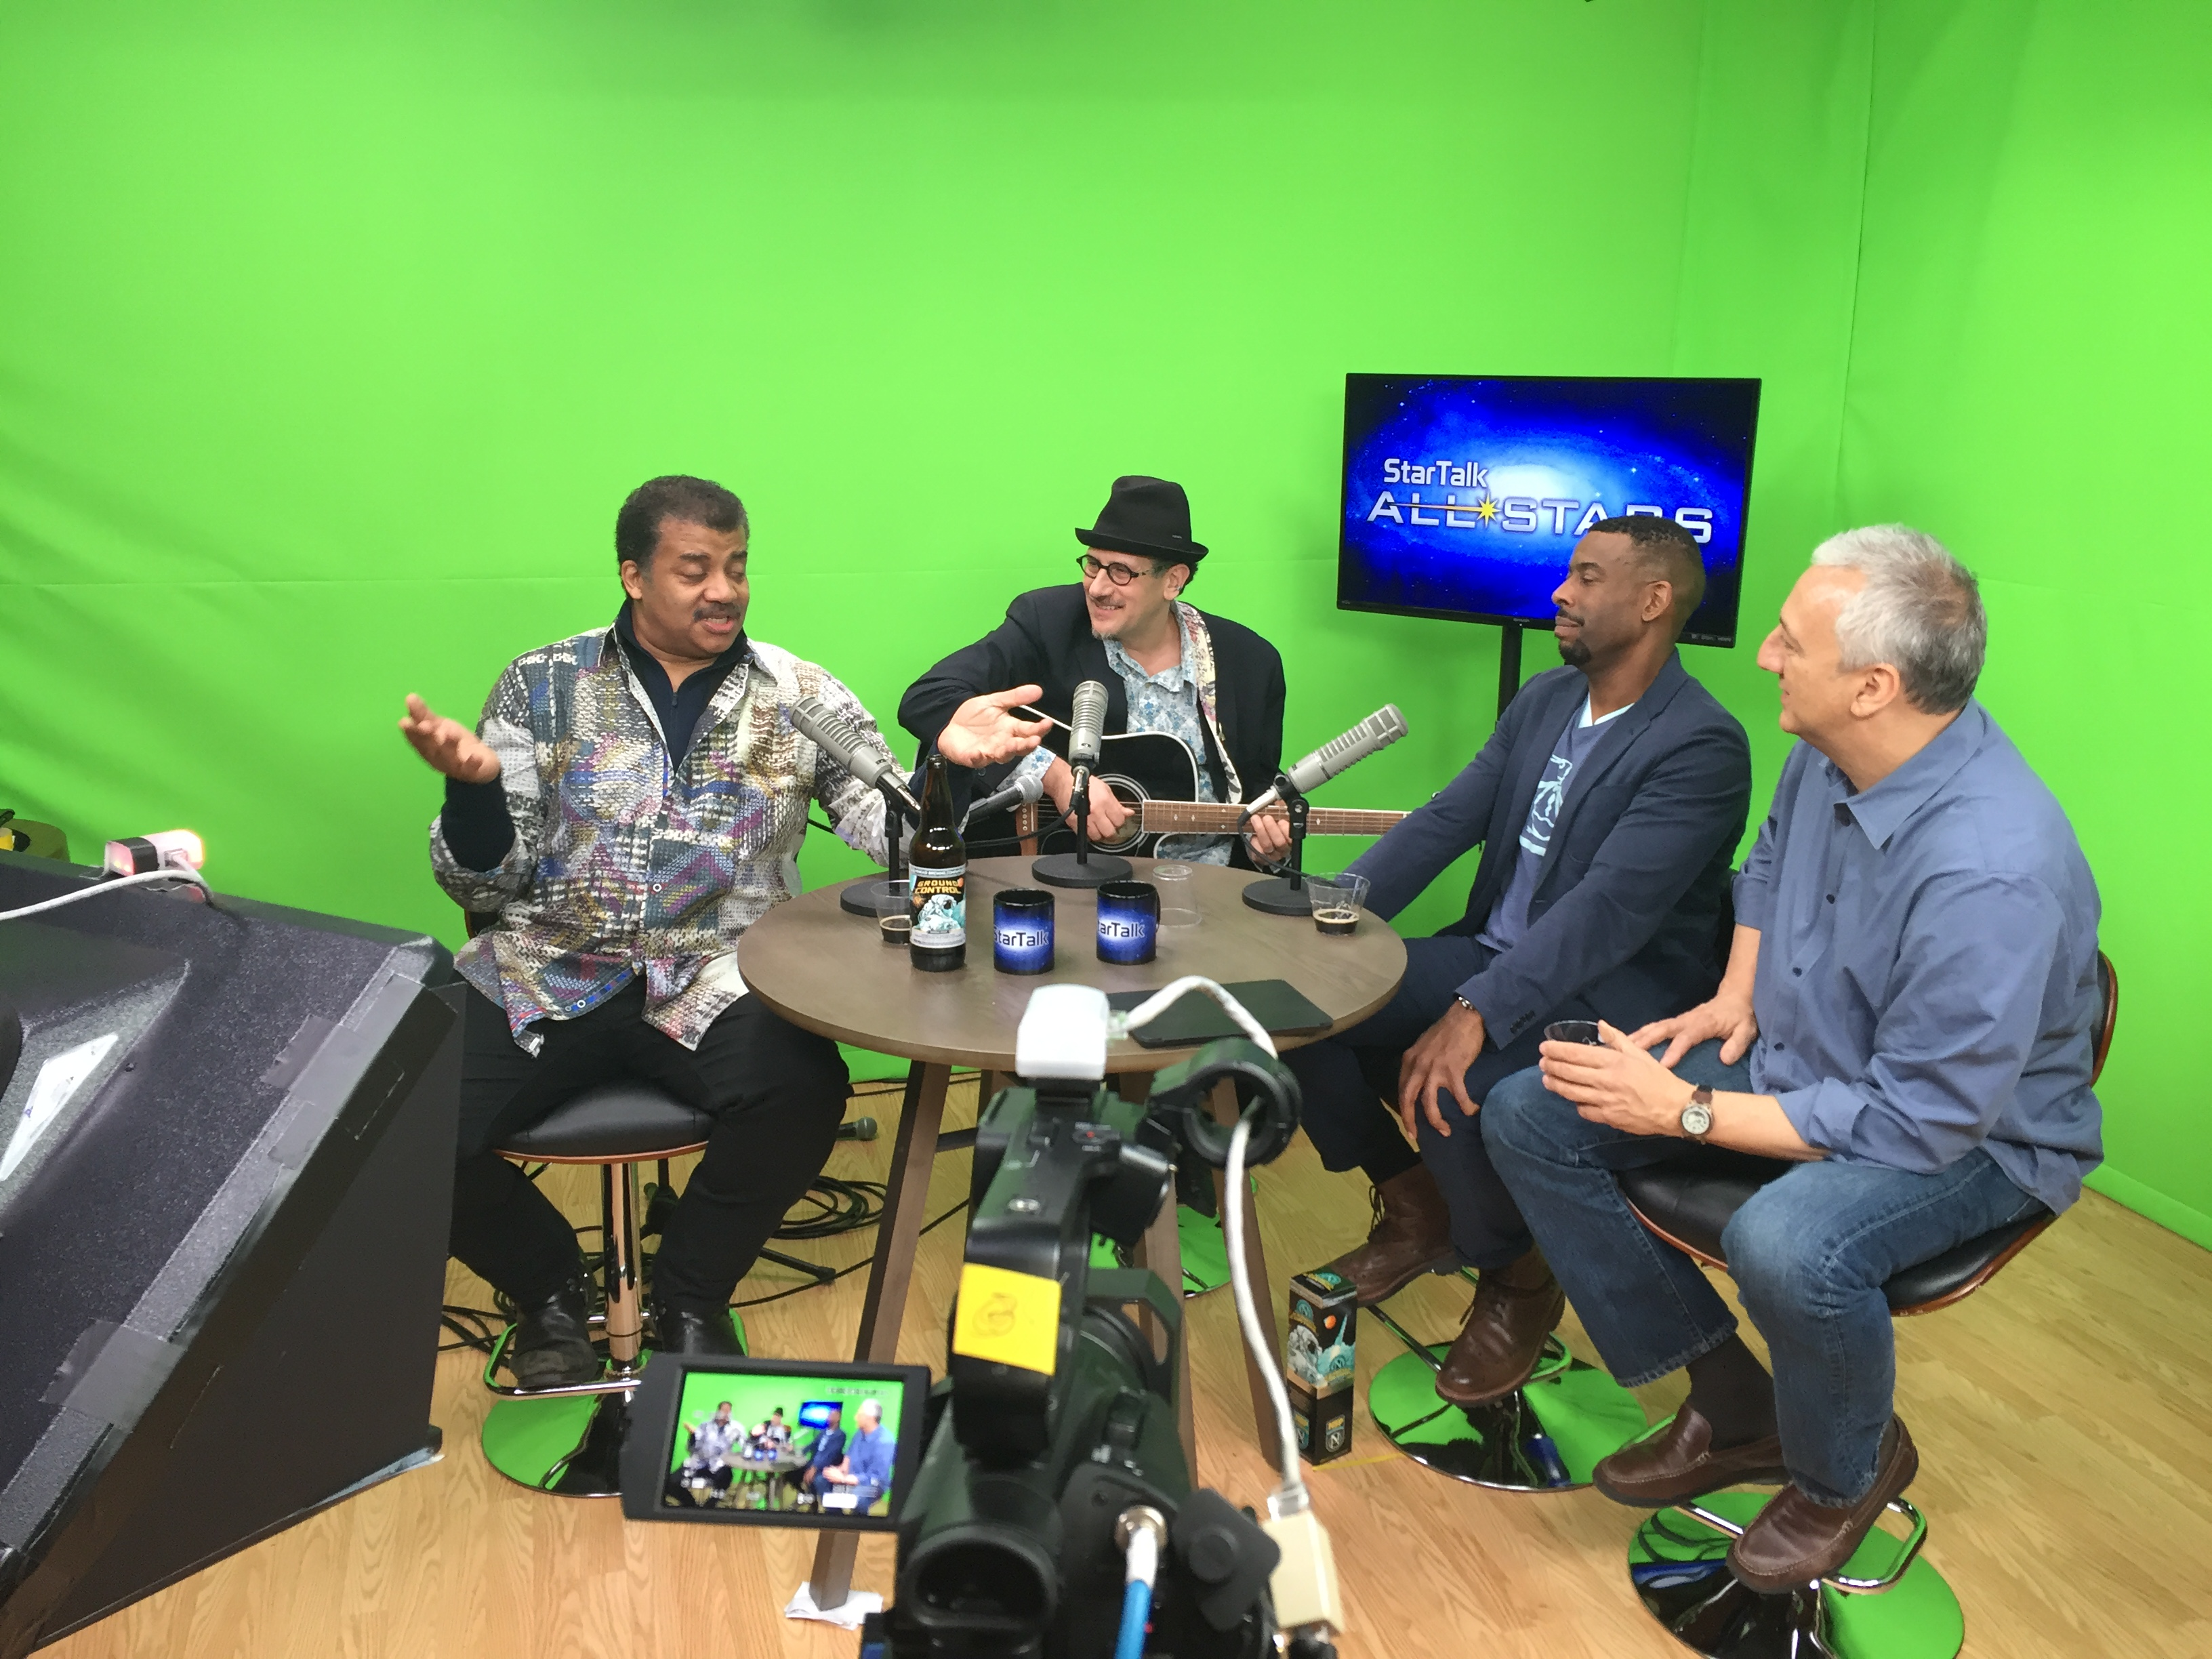 Late night StarTalk All-Stars podcasting with (L-R) Neil deGrasse Tyson, Dr Grinspoon, Chuck Nice and Mike Massimino (astronaut!!)